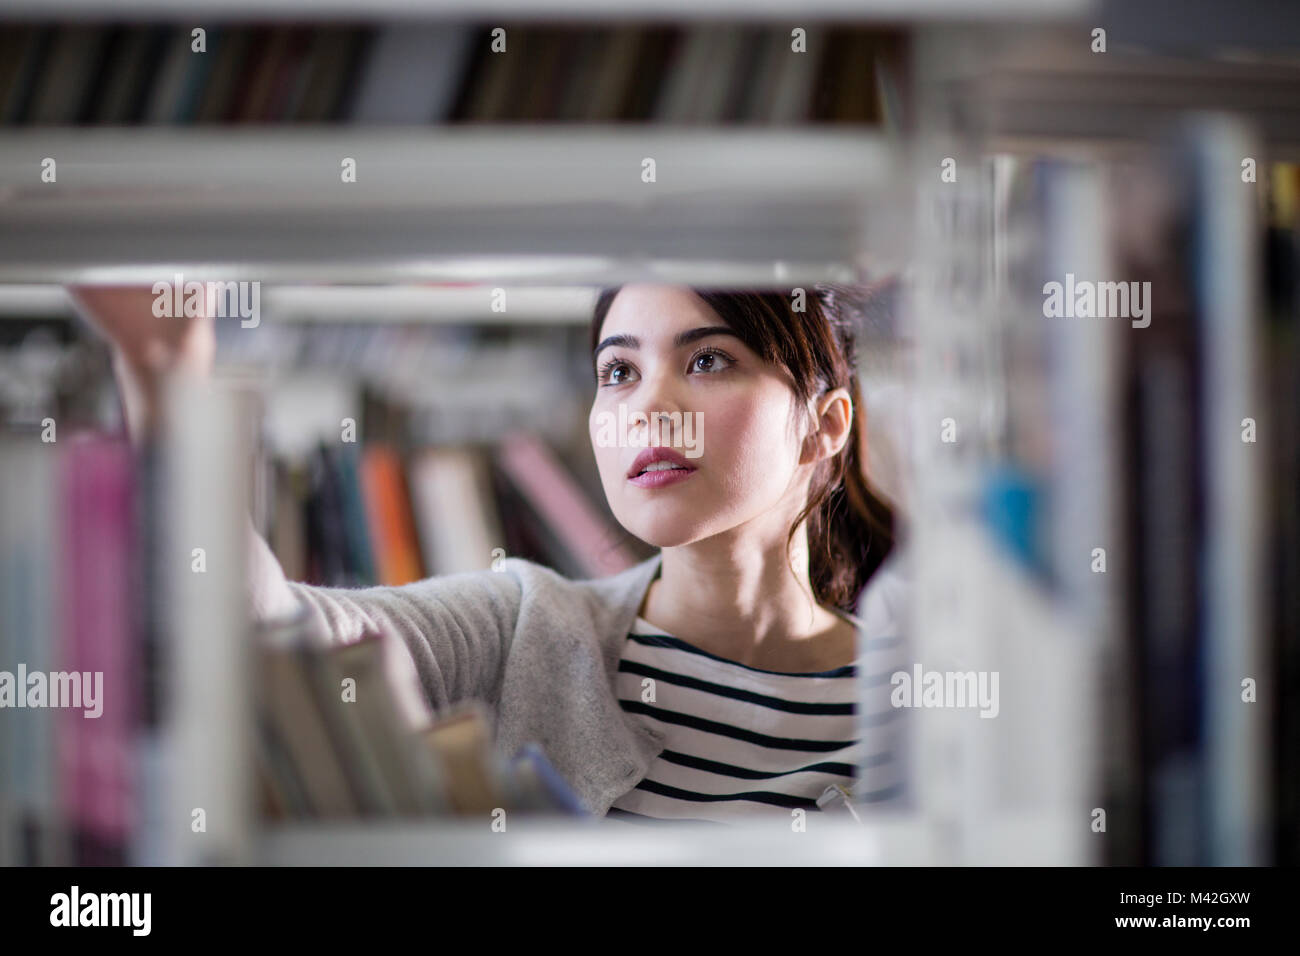 Student looking for a book in library - Stock Image